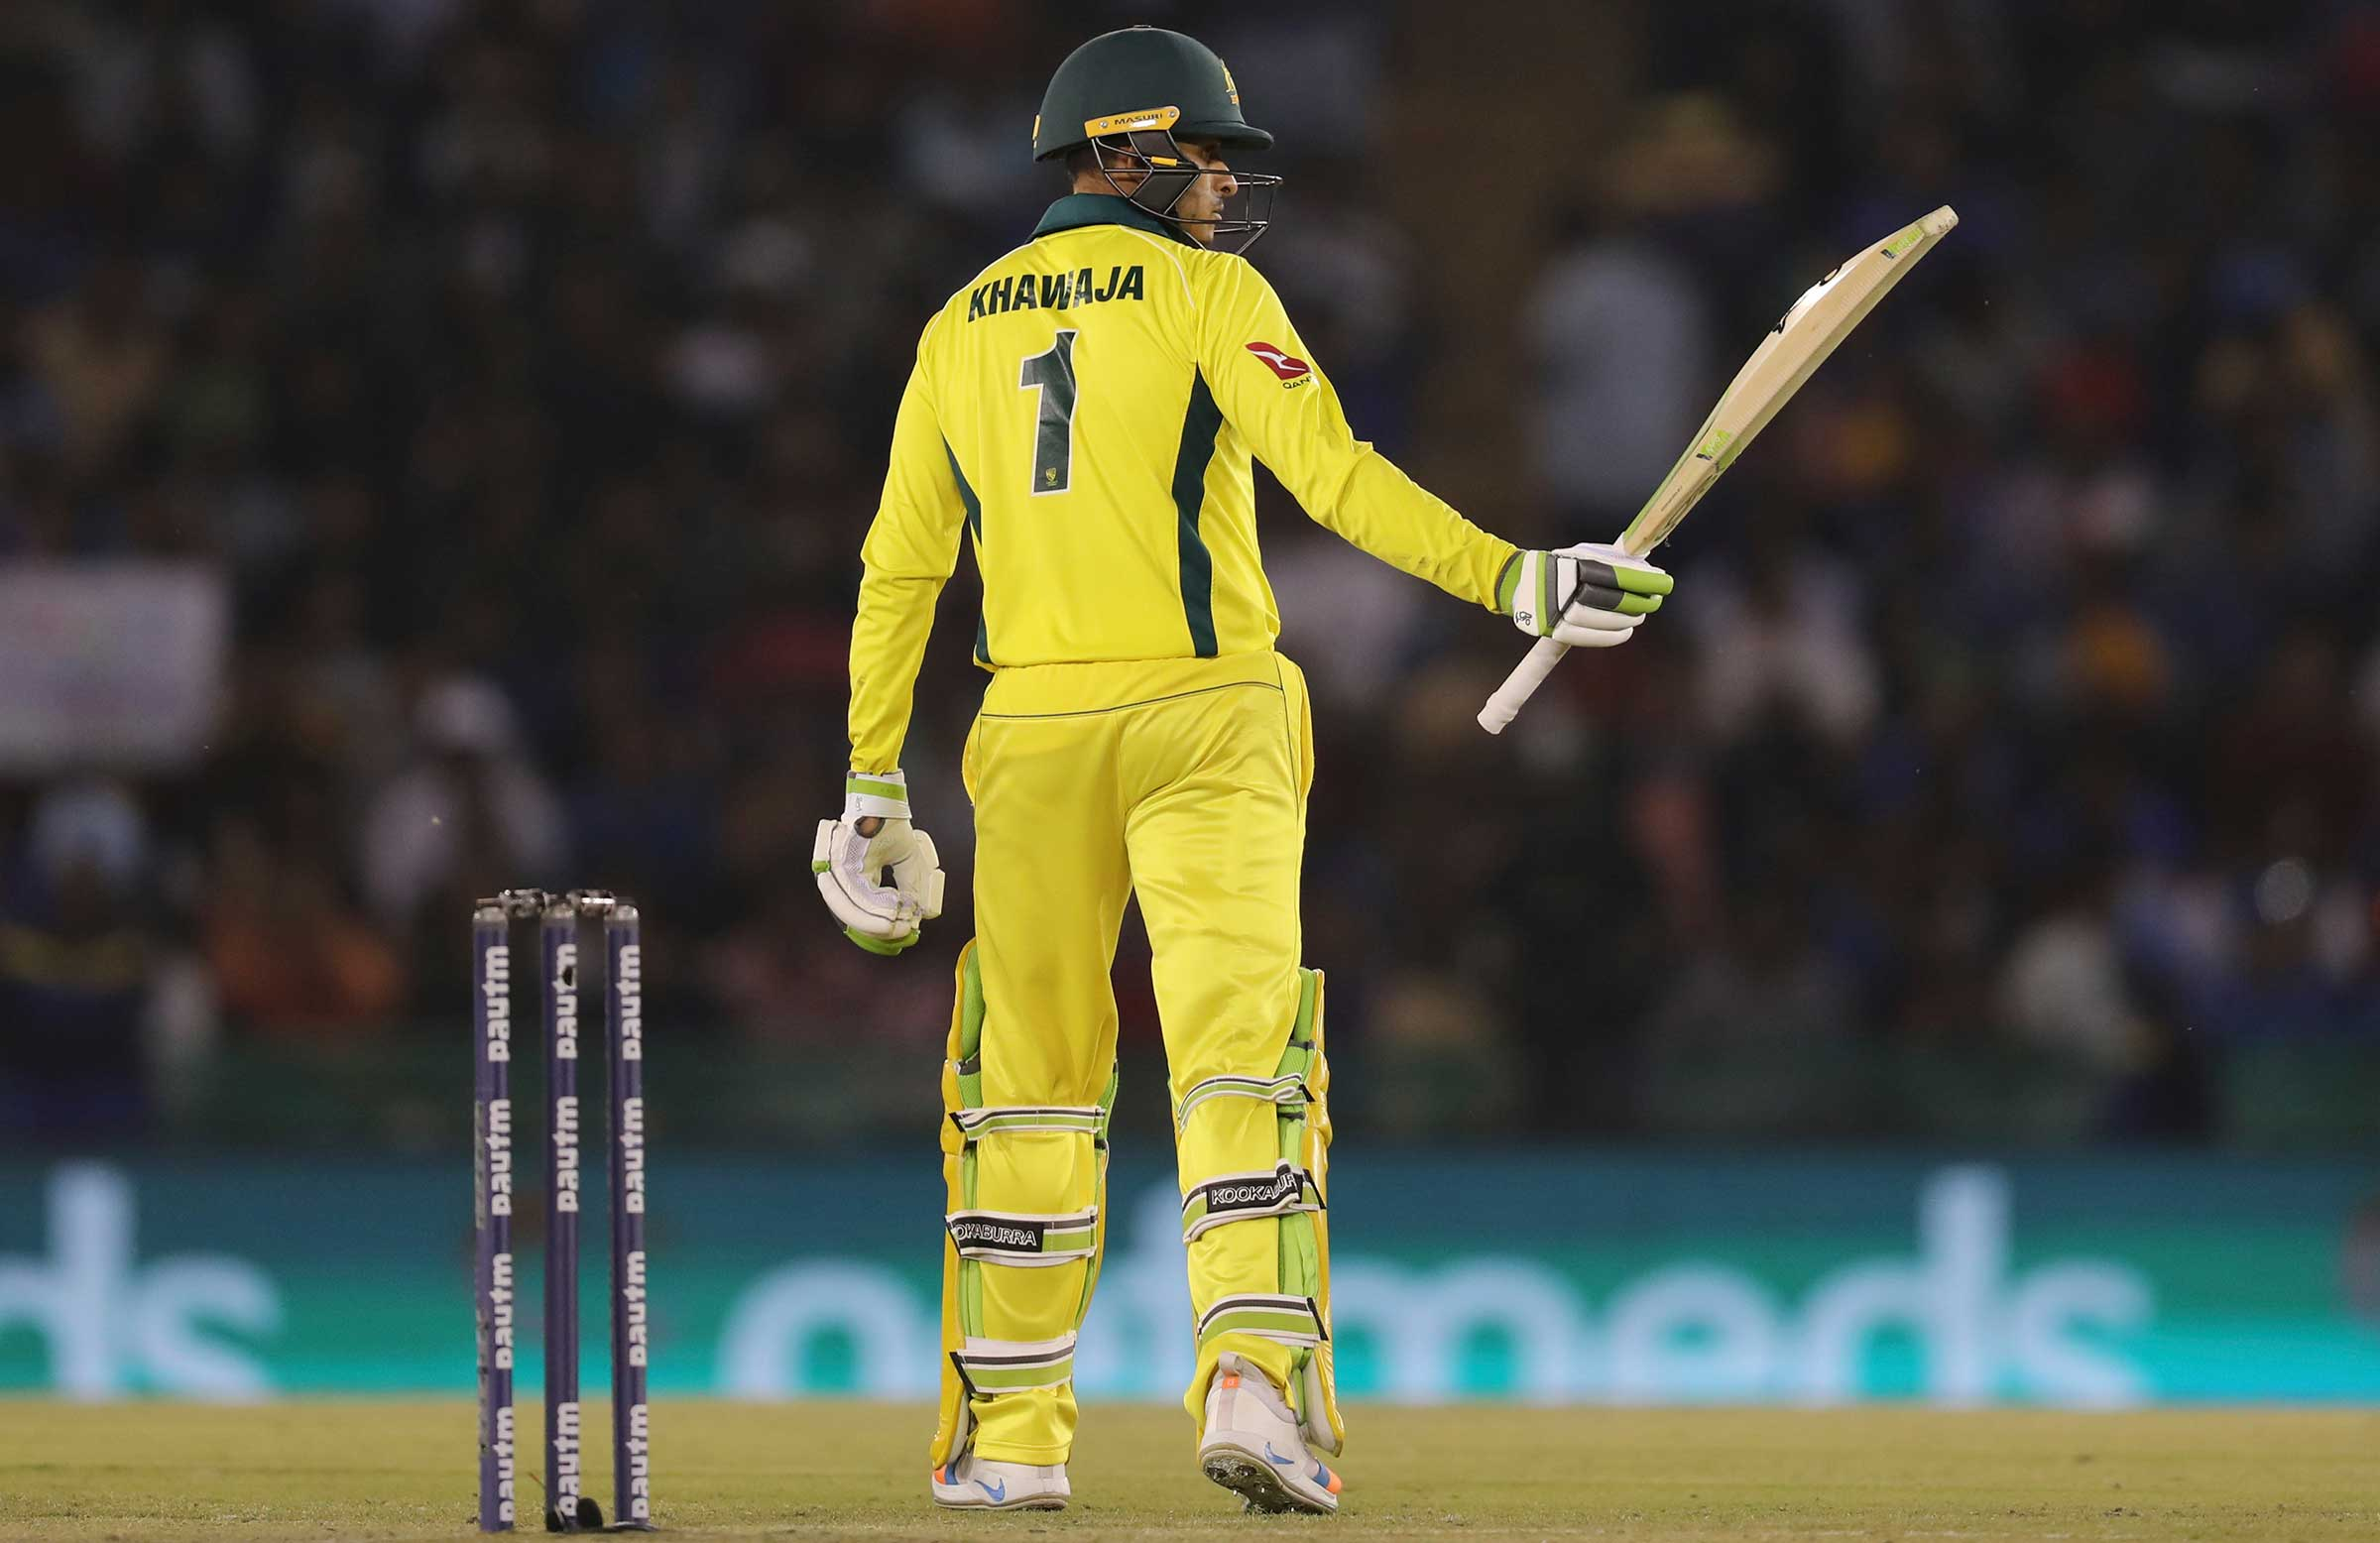 Khawaja added 91 to the 104 hit hit on Friday // Getty